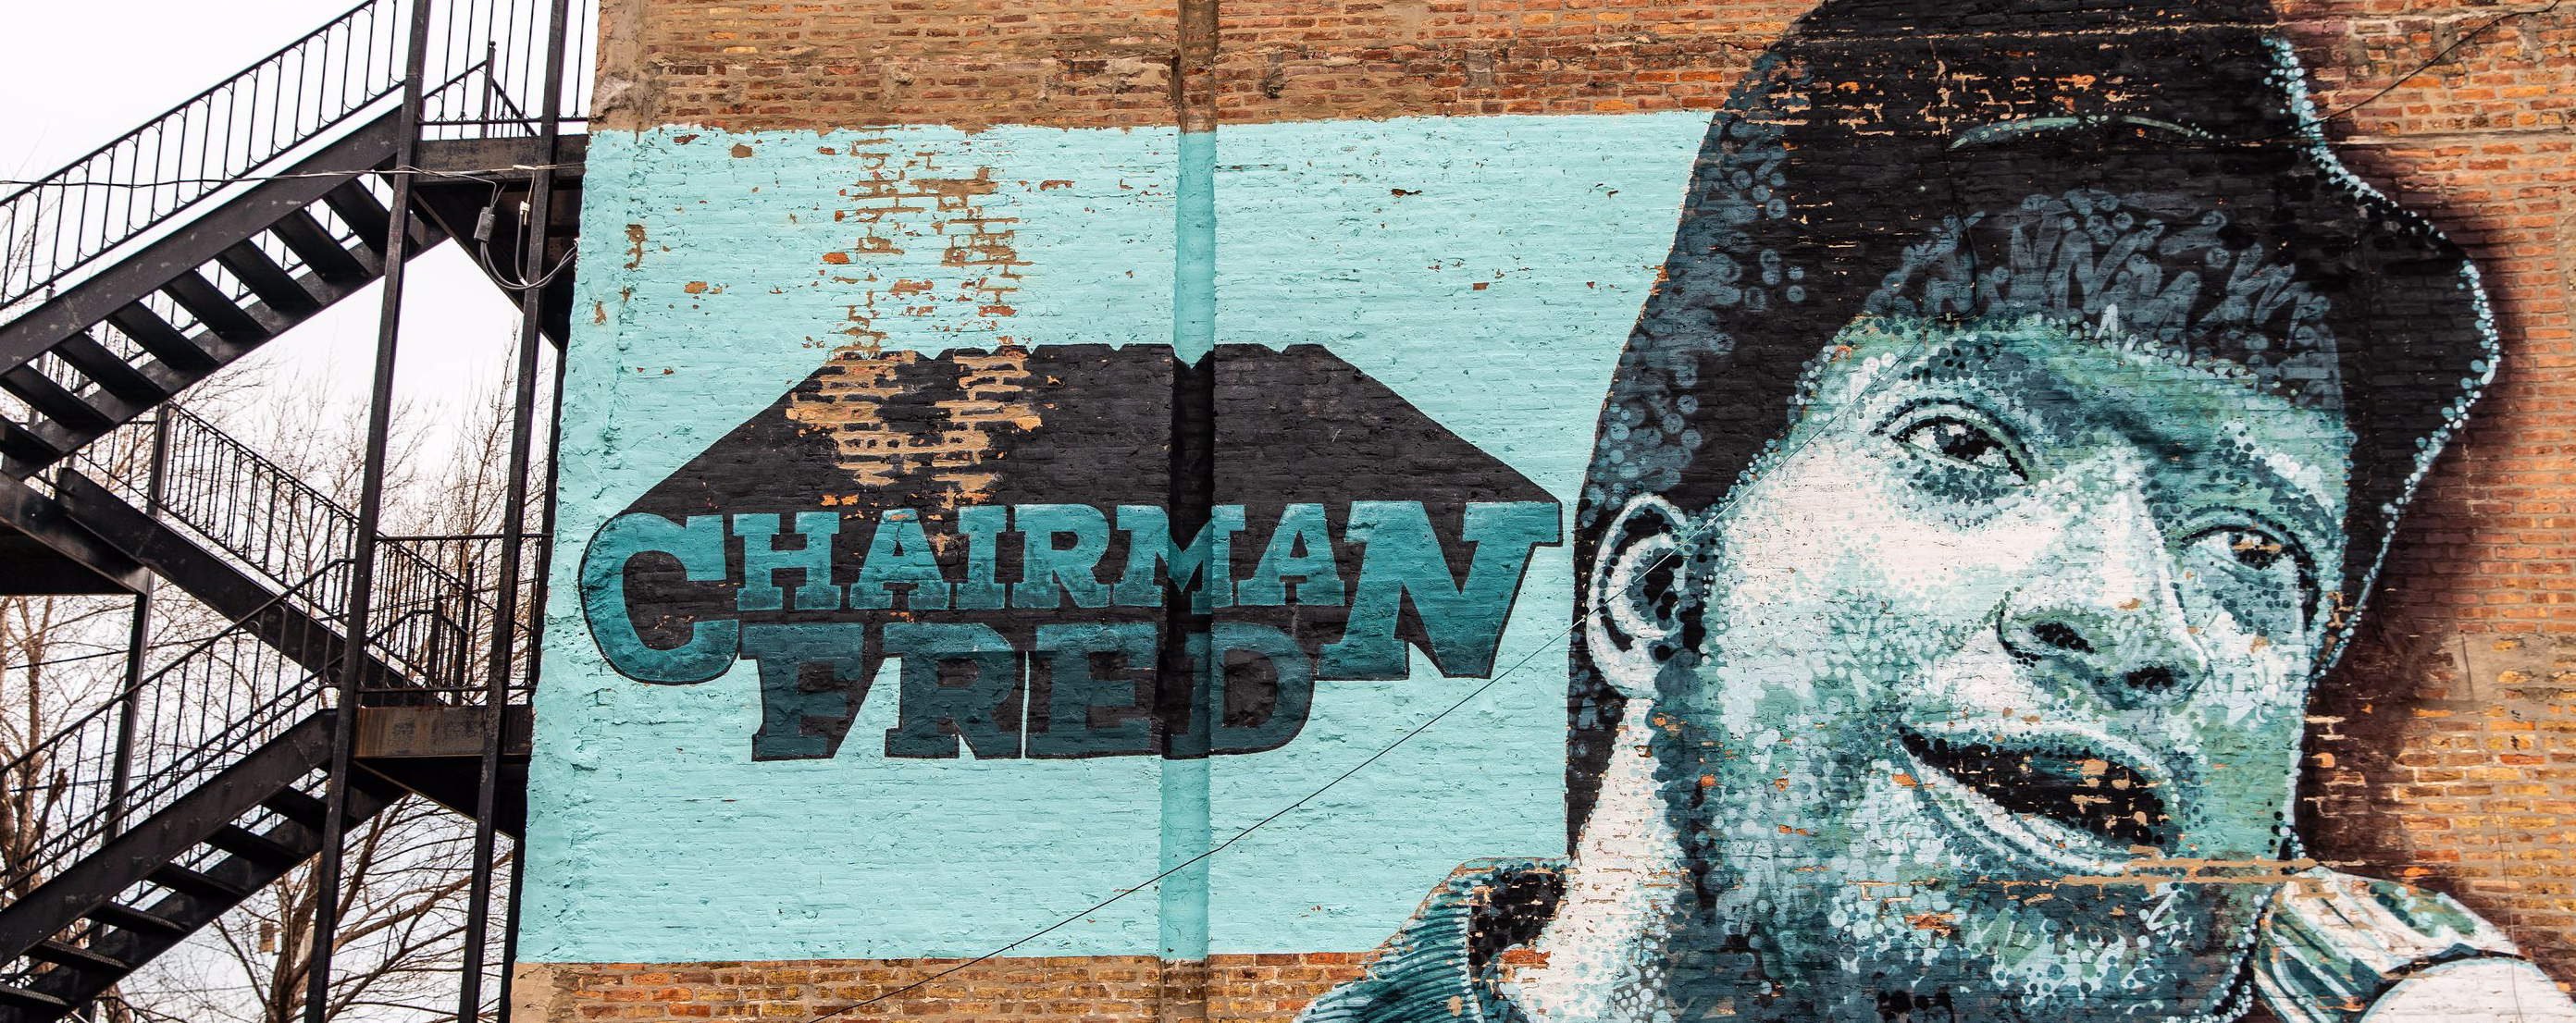 It's a group widely known for murdering police officers. And now the media is celebrating a mural dedicated to their leader who was killed by police.